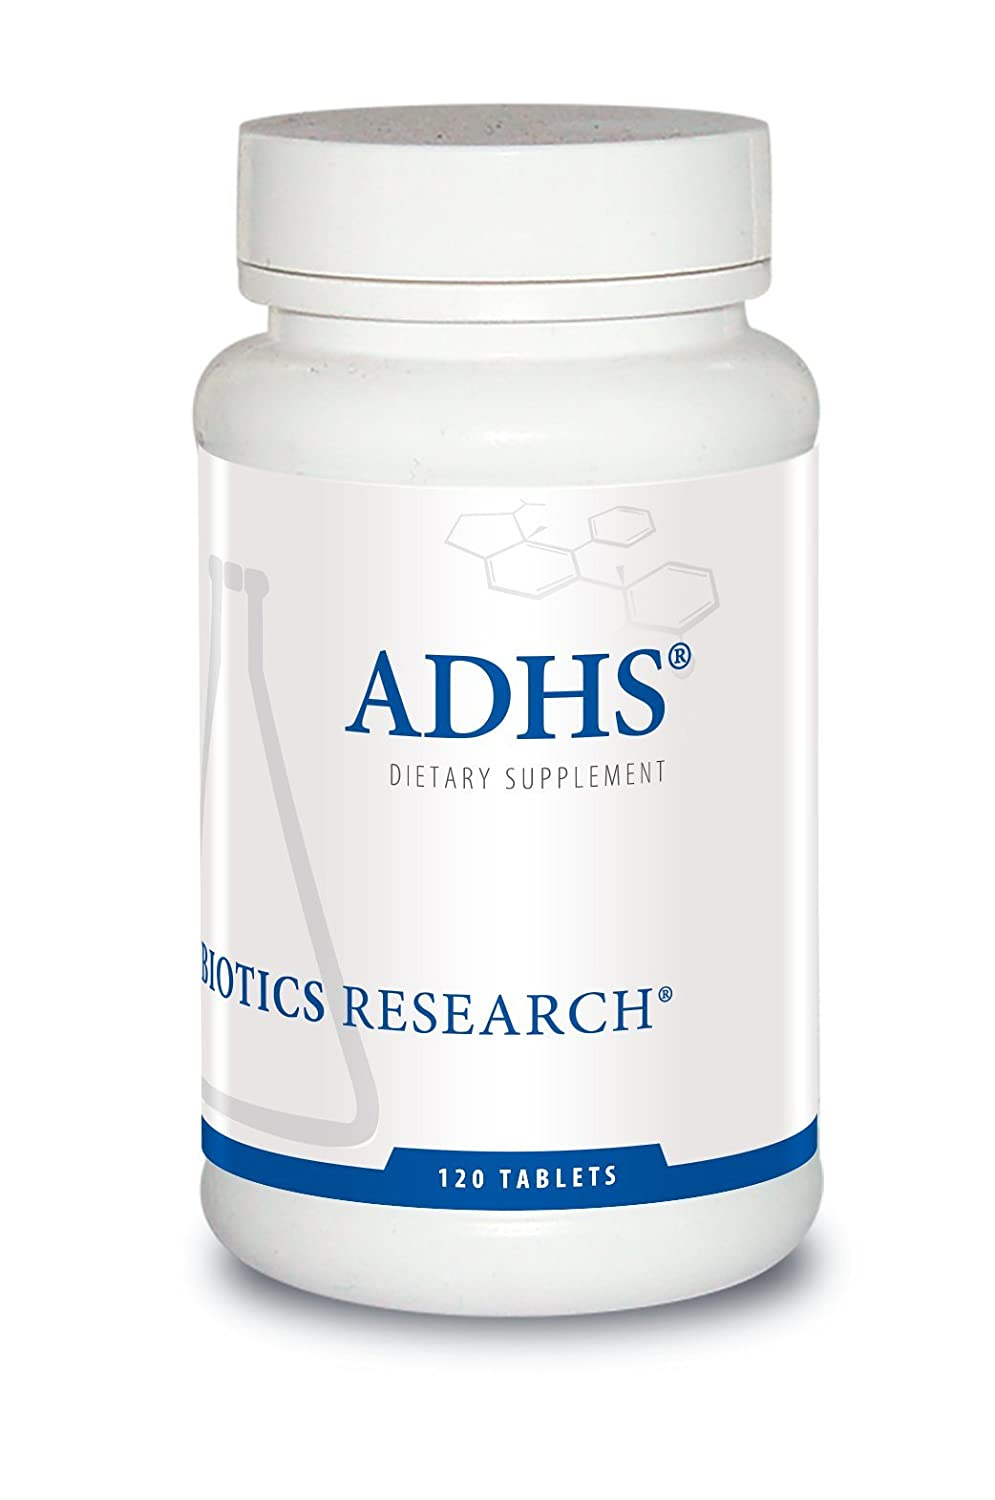 Biotics Research ADHS Adrenal Support, Supports Normal Cortisol Levels, Antioxidant Support, More Energy, Healthy Response, 120 Tabs